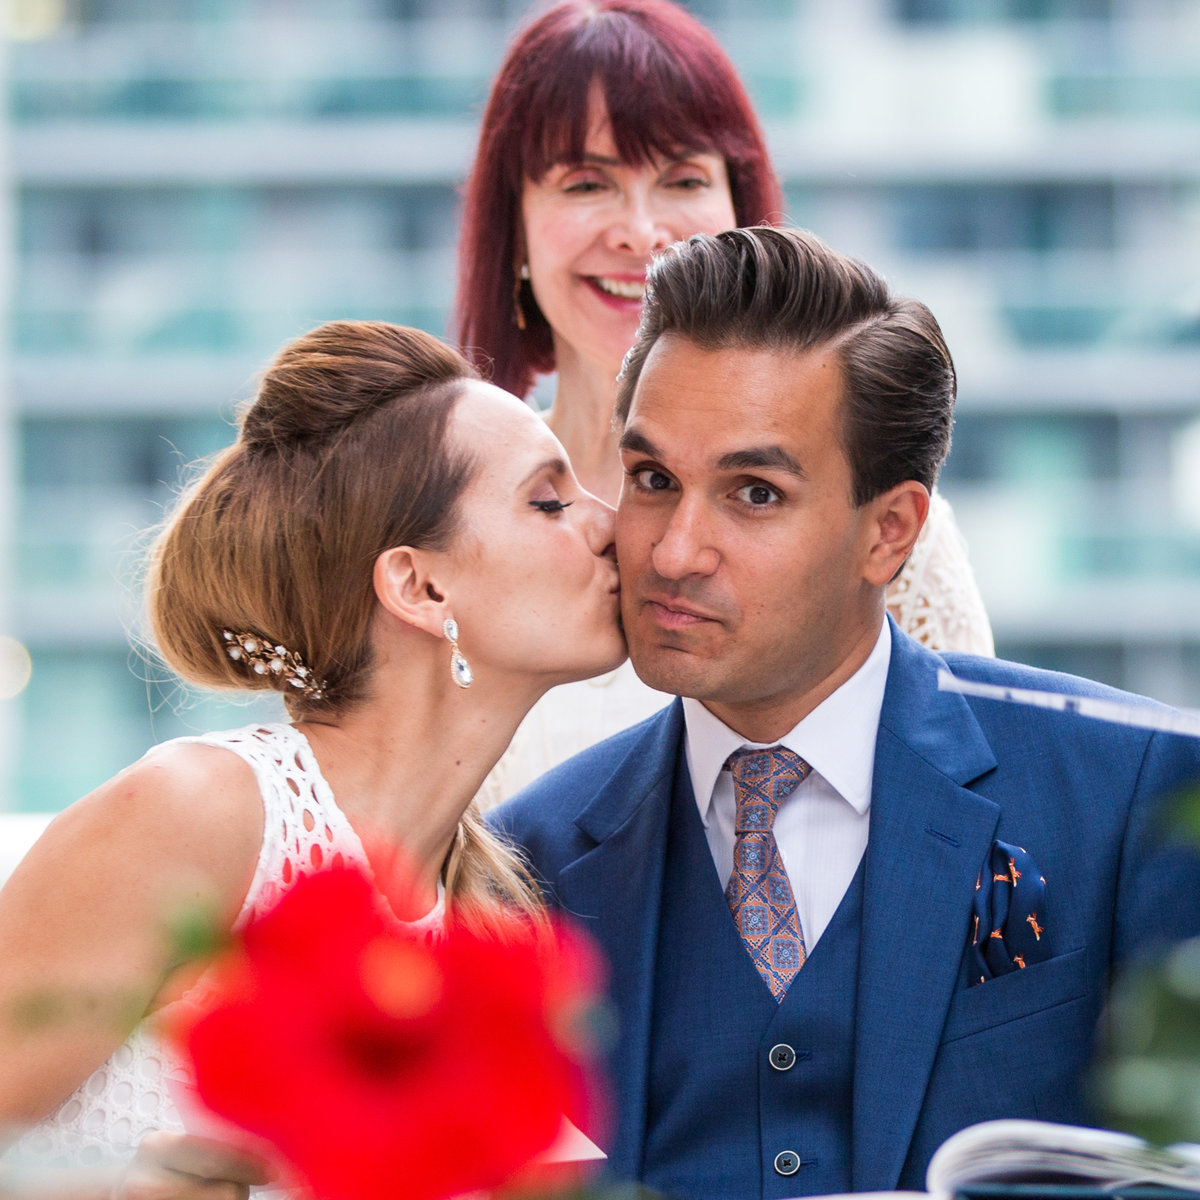 A bride kisses her groom with a red flower in the forground that is out of focus while the focus is on their faces